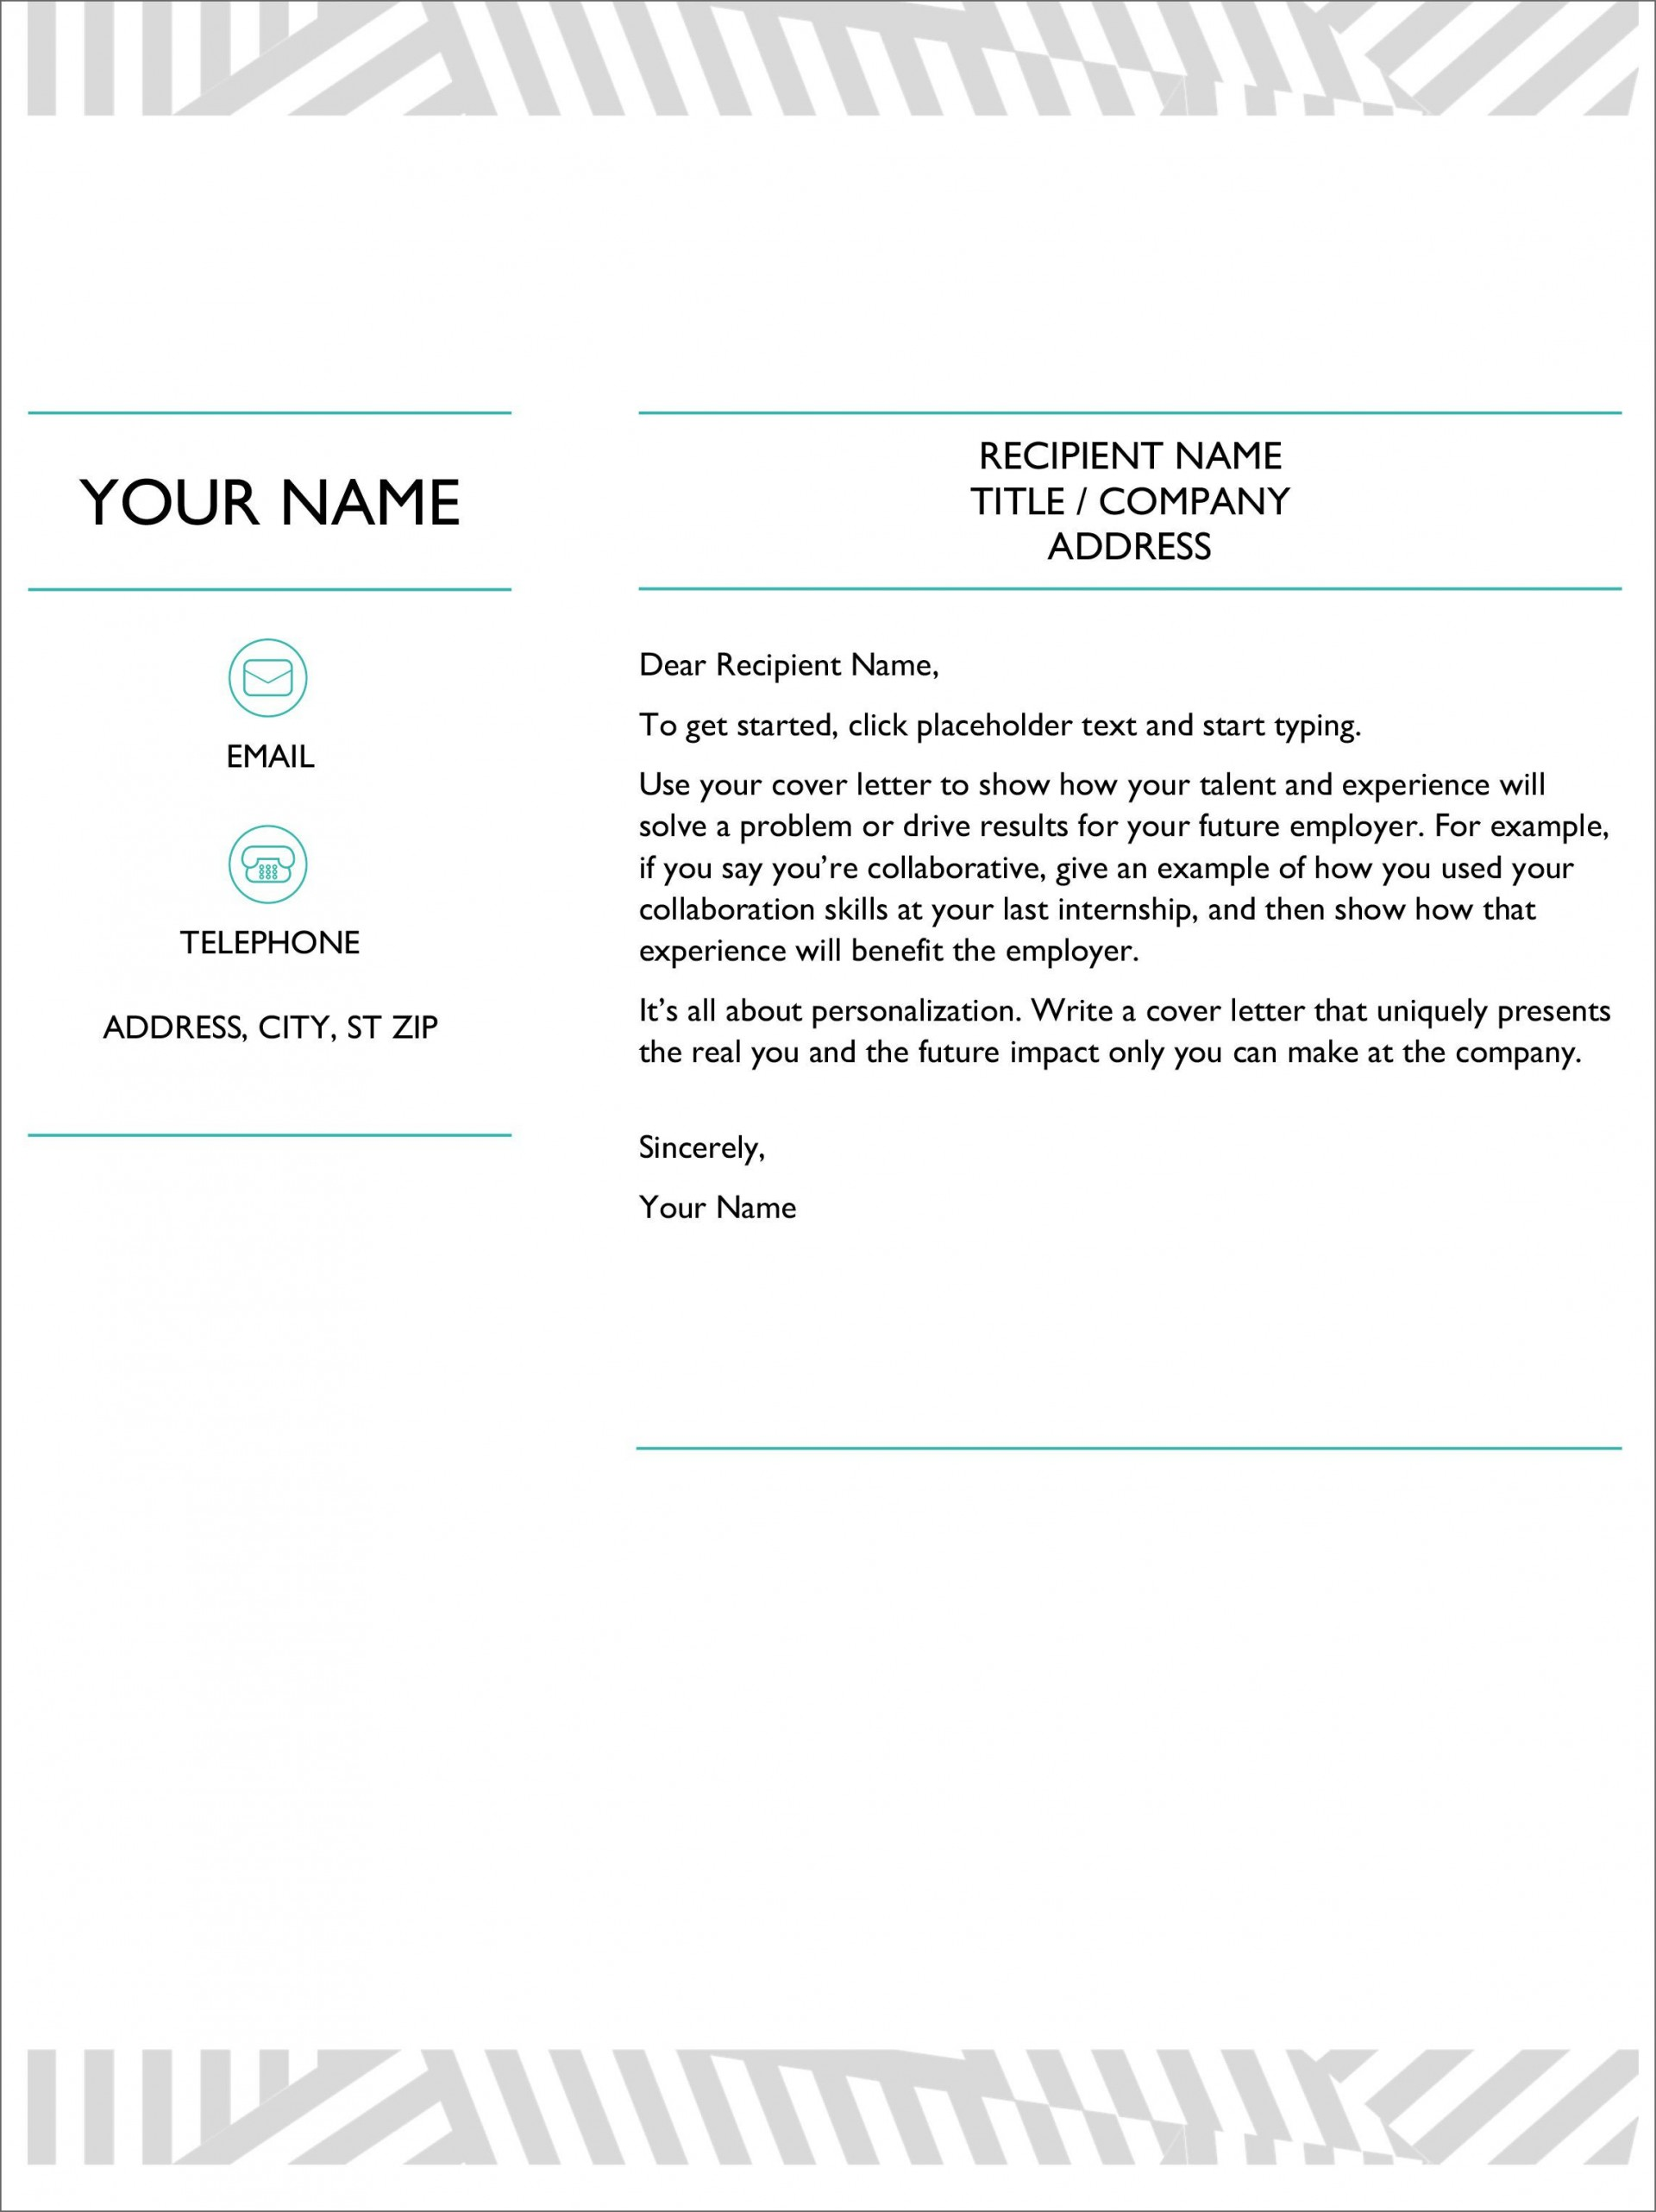 007 Excellent Window Resume Cover Letter Template Photo  Templates1920